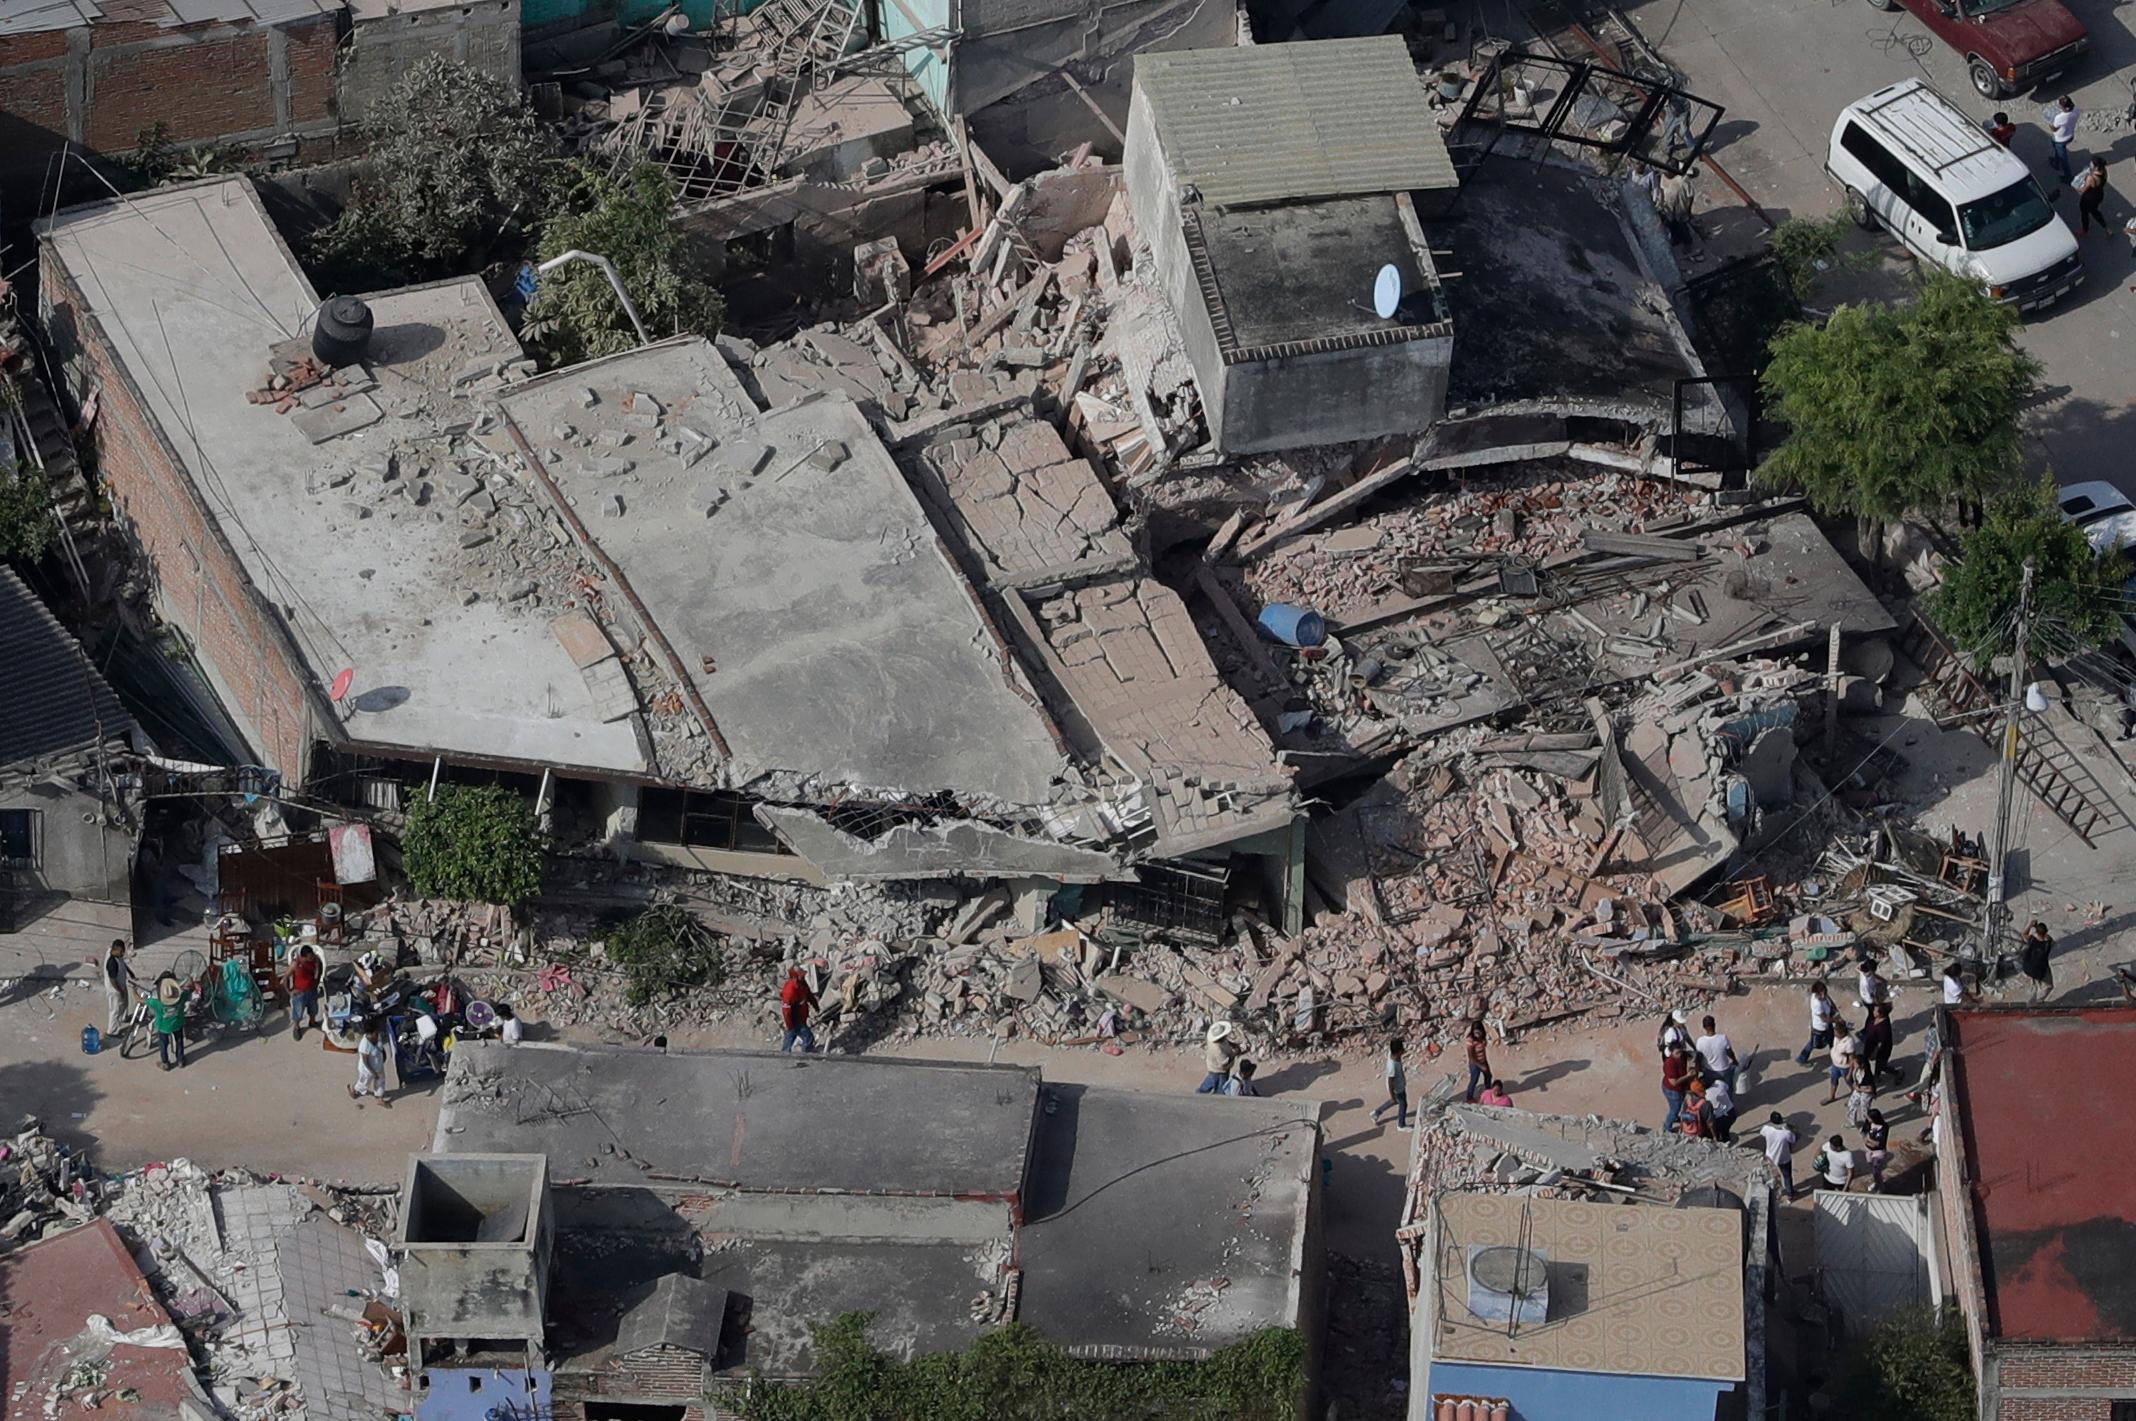 People walk through a neighborhood where many buildings collapsed a day before, during a magnitude 7.1 earthquake in Jojutla, Mexico, Wednesday, Sept. 20, 2017. Police, firefighters and civilians are digging frantically through the rubble of collapsed schools, homes and apartment buildings looking for survivors. (AP Photo/Rebecca Blackwell)